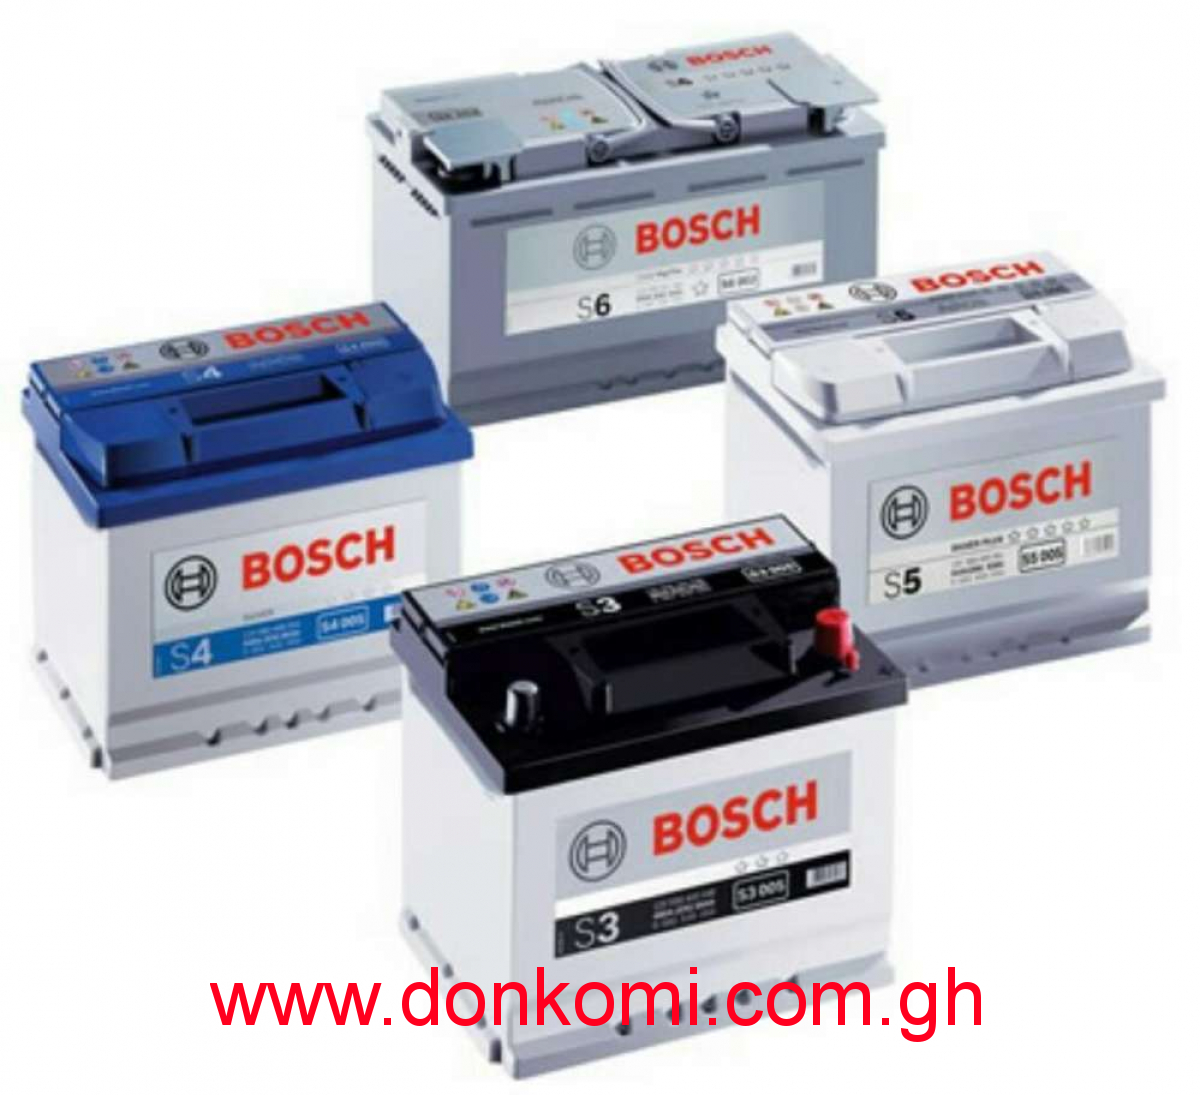 13 plates S3 Bosch battery. + Free delivery